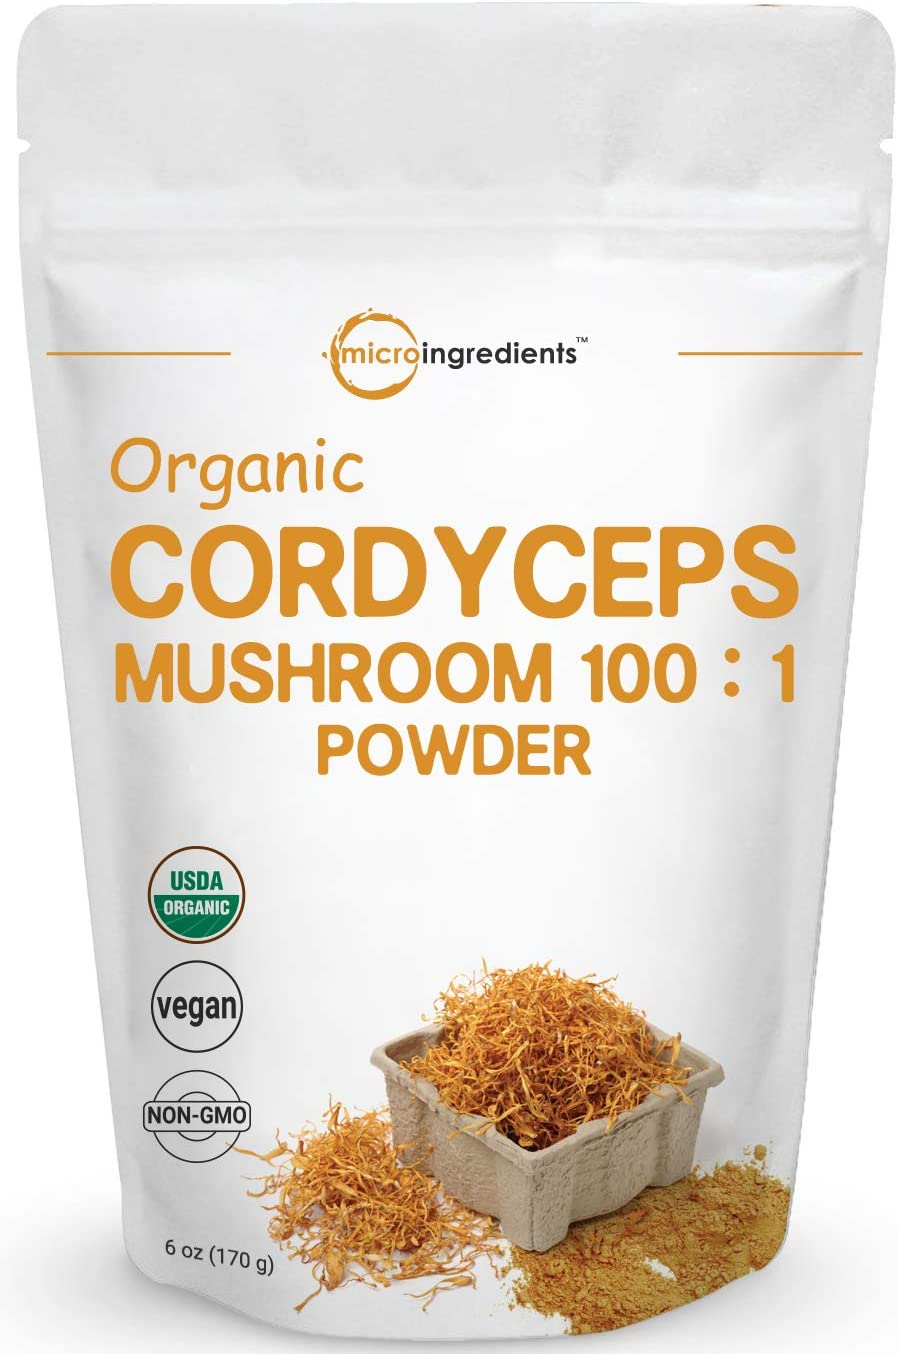 Sustainably US Grown, Organic Cordyceps Mushroom Extract 100 1, 6 Ounce, Cordyceps Powder Organic, Supports Energy and Immune Health, No GMOs and Vegan Friendly